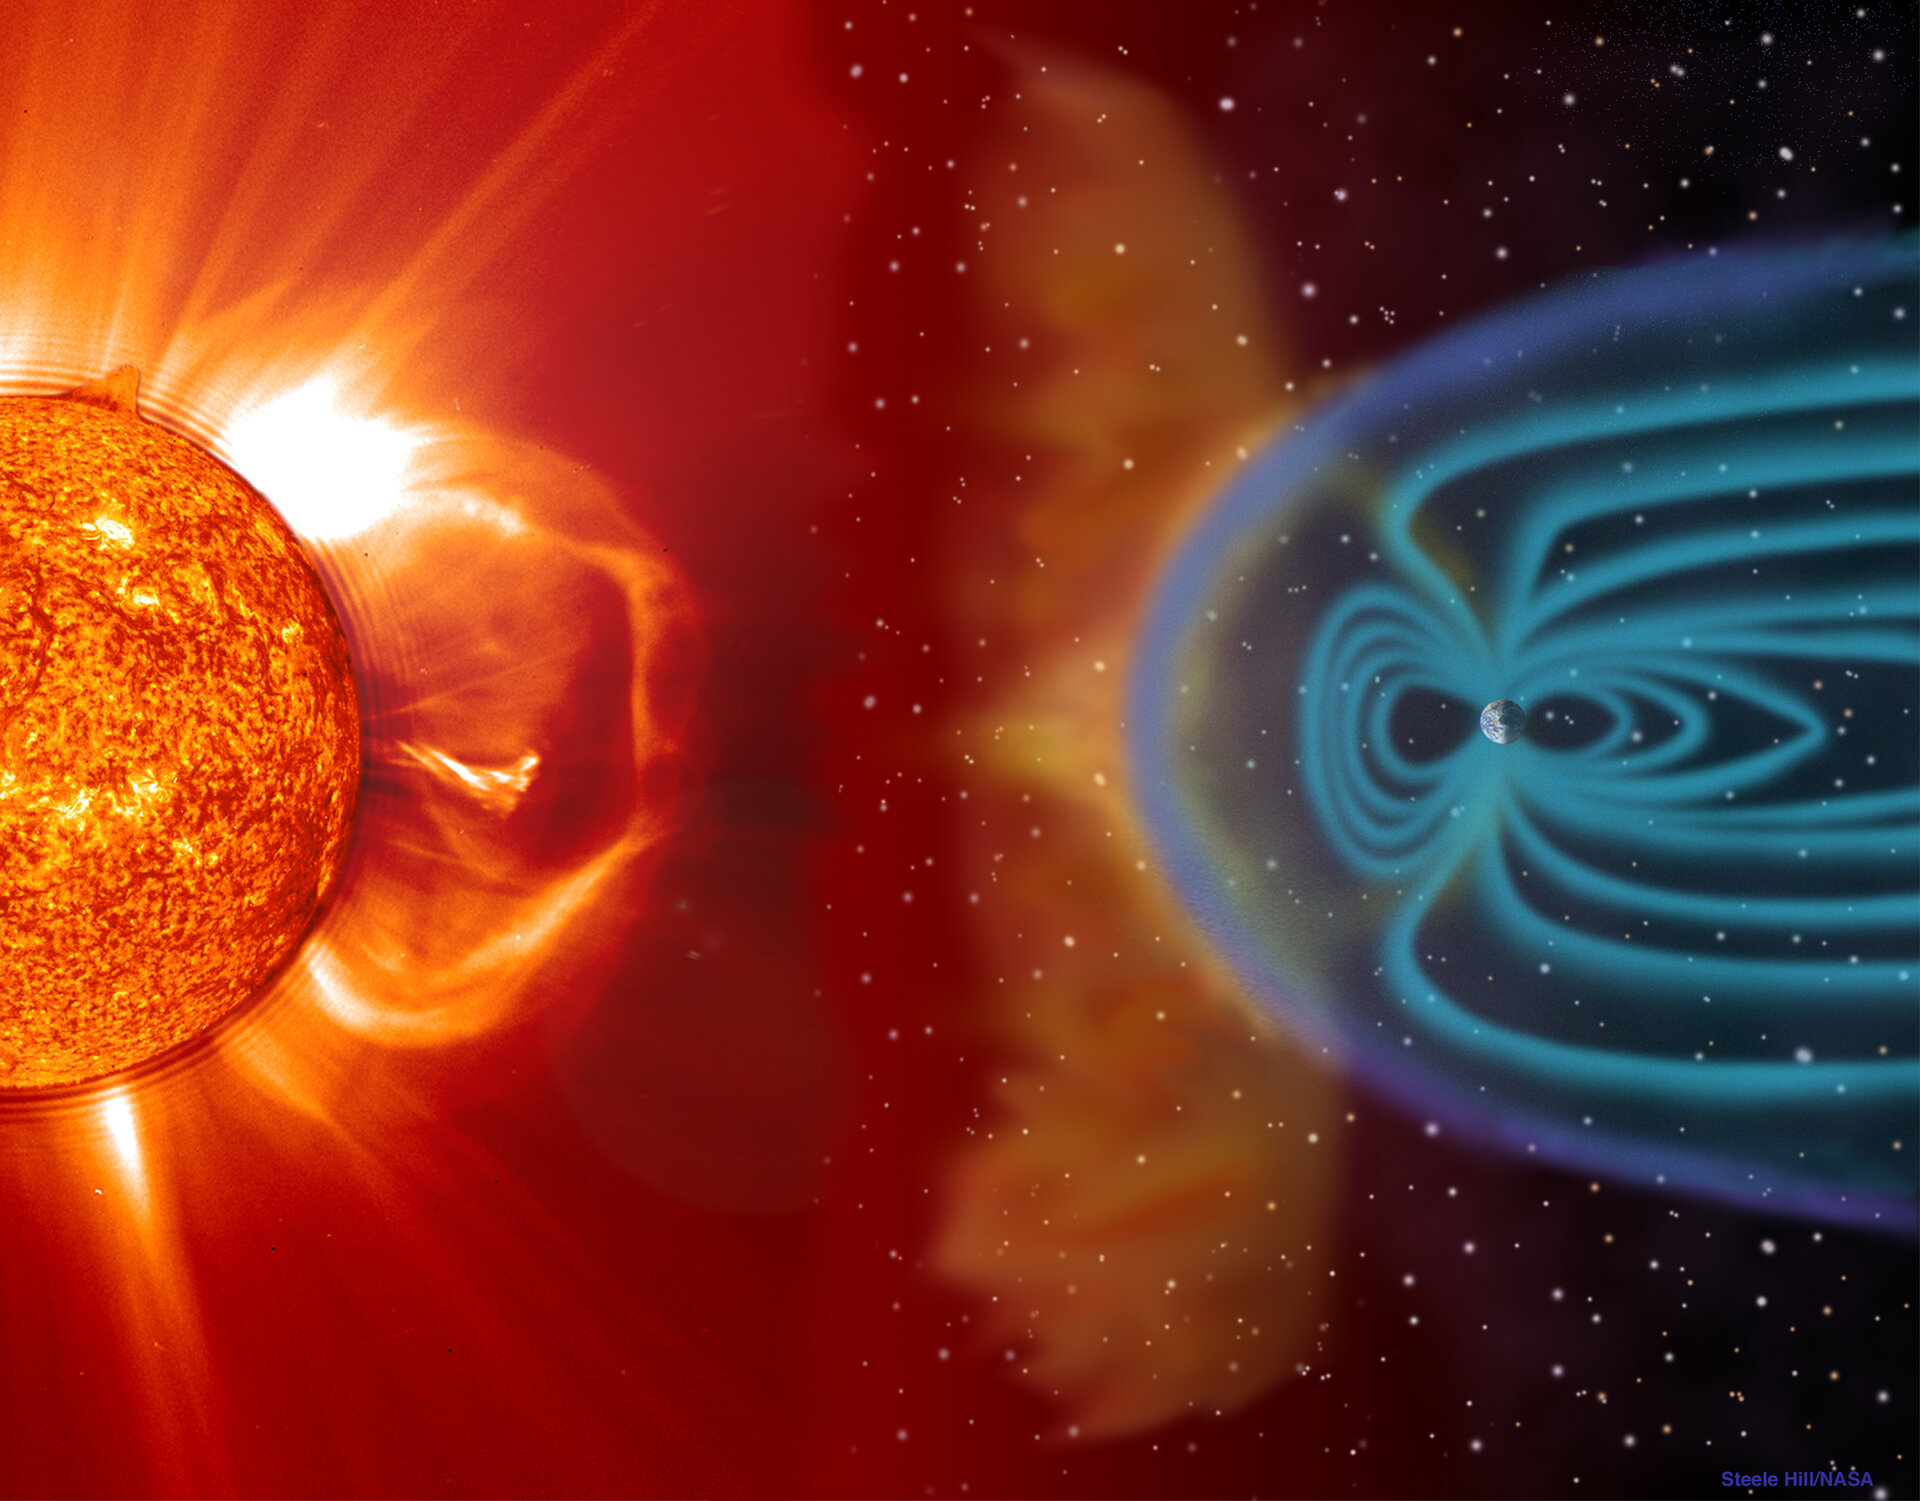 Coronal mass ejection (CME) blast and subsequent impact at Earth